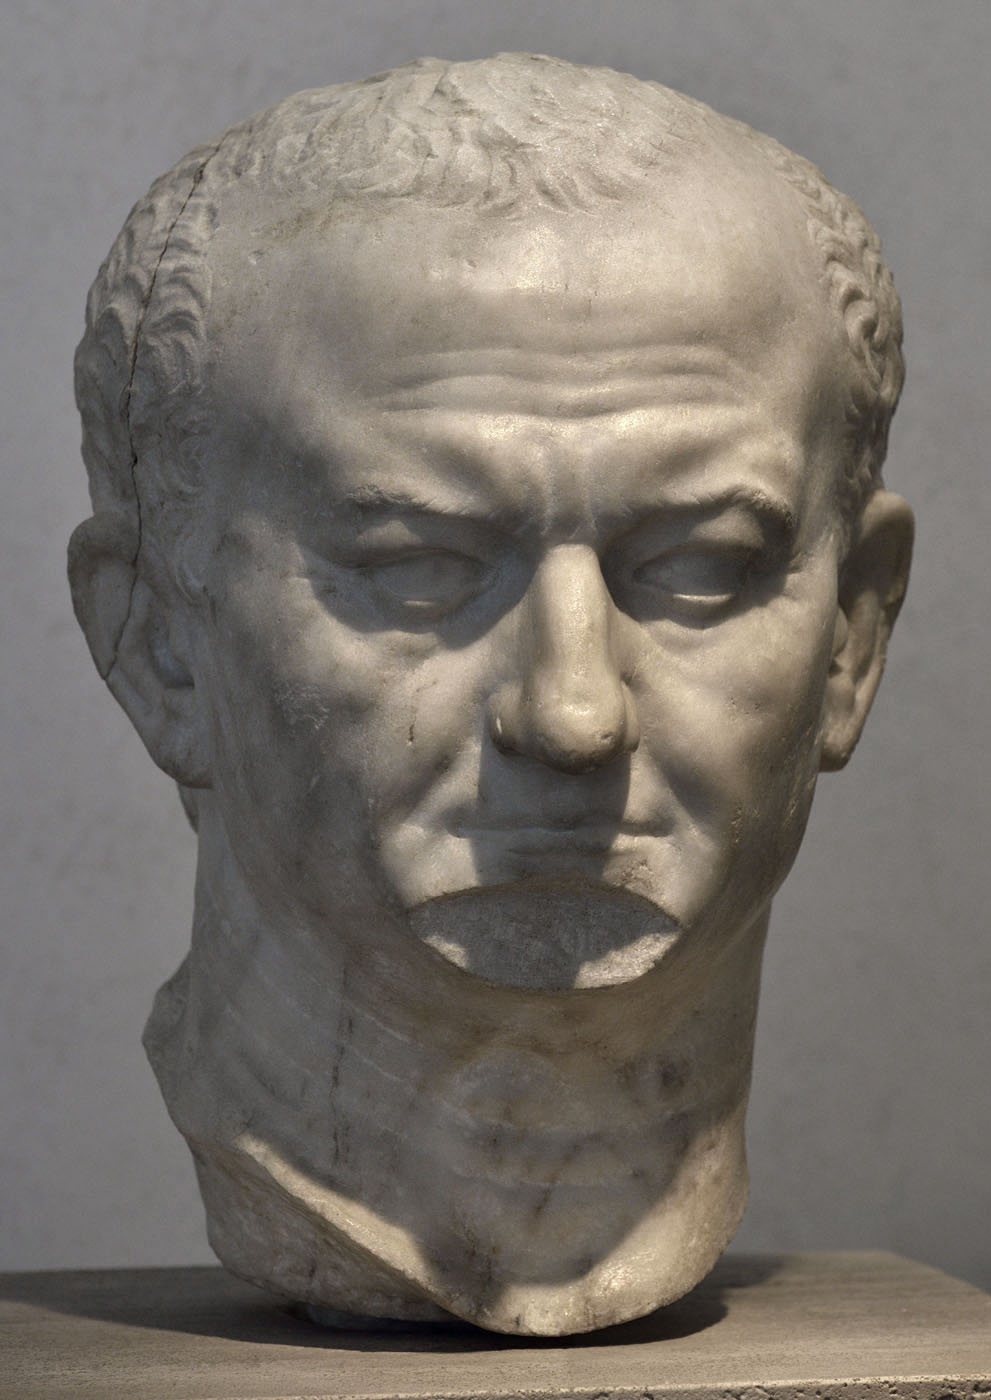 Portrait of Vespasian. Marble. Second half of the 1st century CE. Inv. No. 330. Rome, Roman National Museum, Palazzo Massimo alle Terme